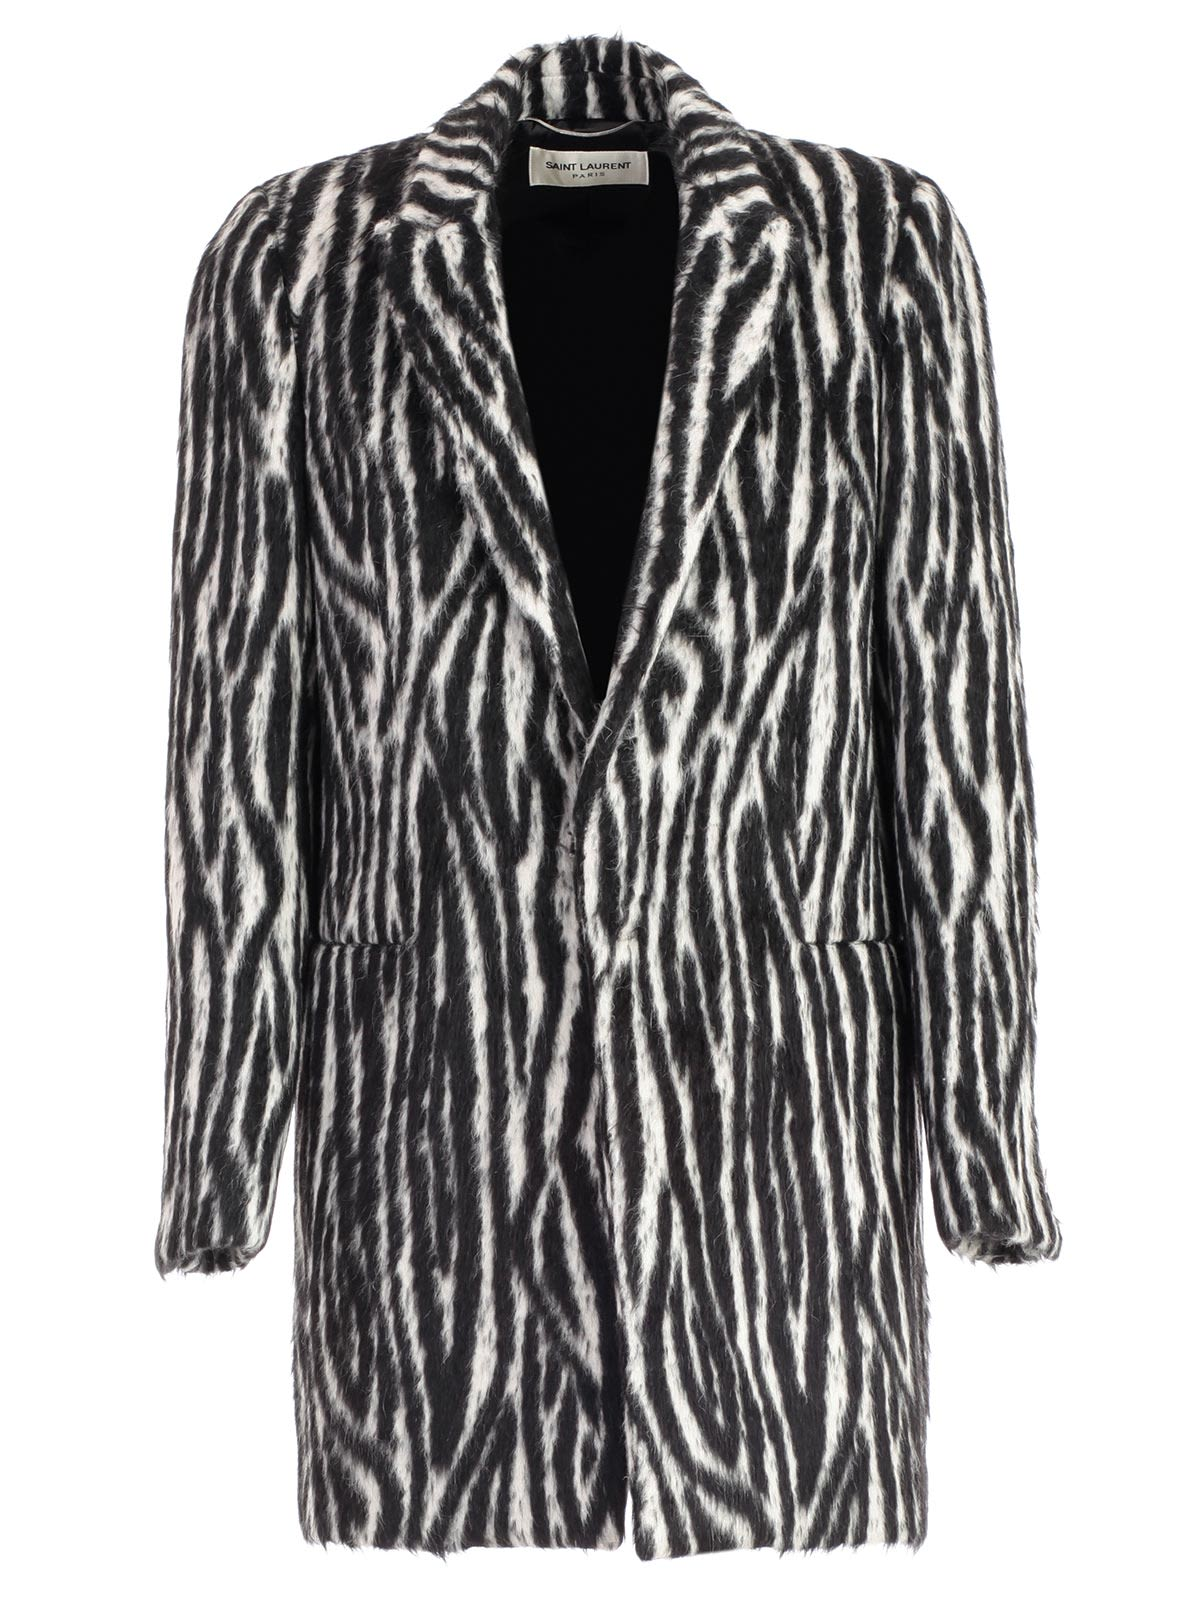 SAINT LAURENT SINGLE-BREASTED FUR COAT